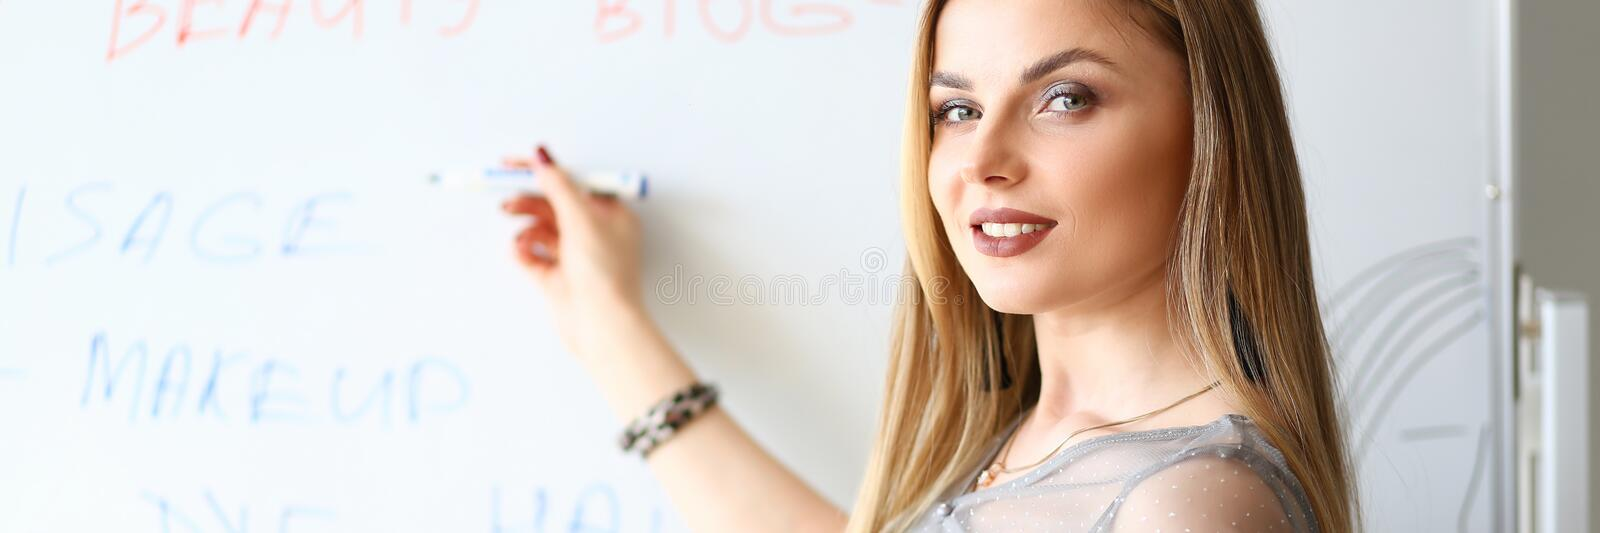 Girl Makeup Artist Beauty Product Presentation. Attractive Blond Woman Writing Tutorial Points on Board. Woman Planning Lecture. Smiling Businesswoman Holding stock photo